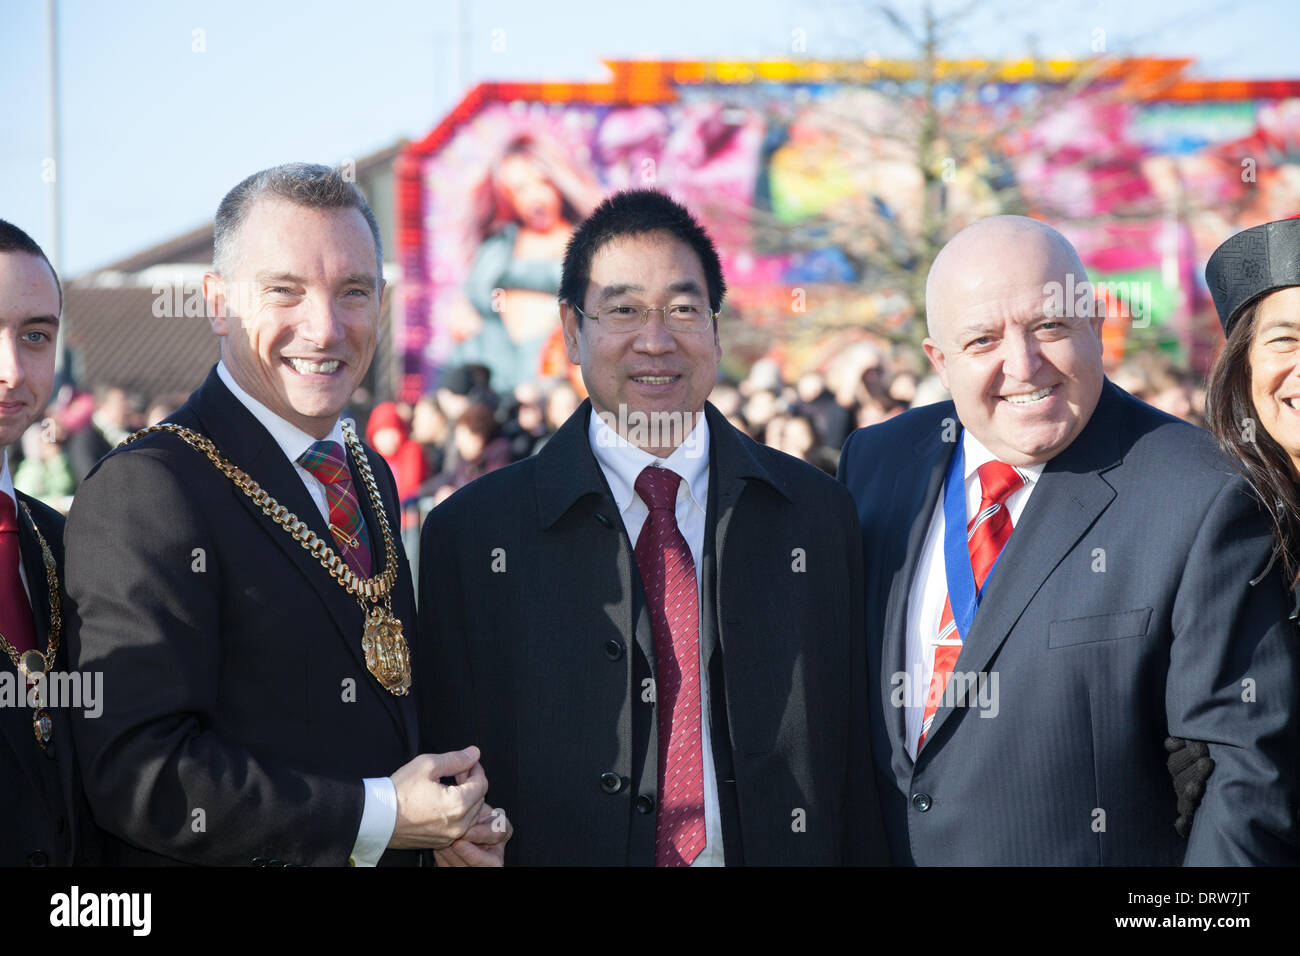 Liverpool, UK. 2nd Feb 2014. Lord Mayor of Liverpool Gary Millar and Liverpool Mayor Joe Anderson attend Chinese New Year celebrations in Liverpool Credit:  Adam Vaughan/Alamy Live News - Stock Image